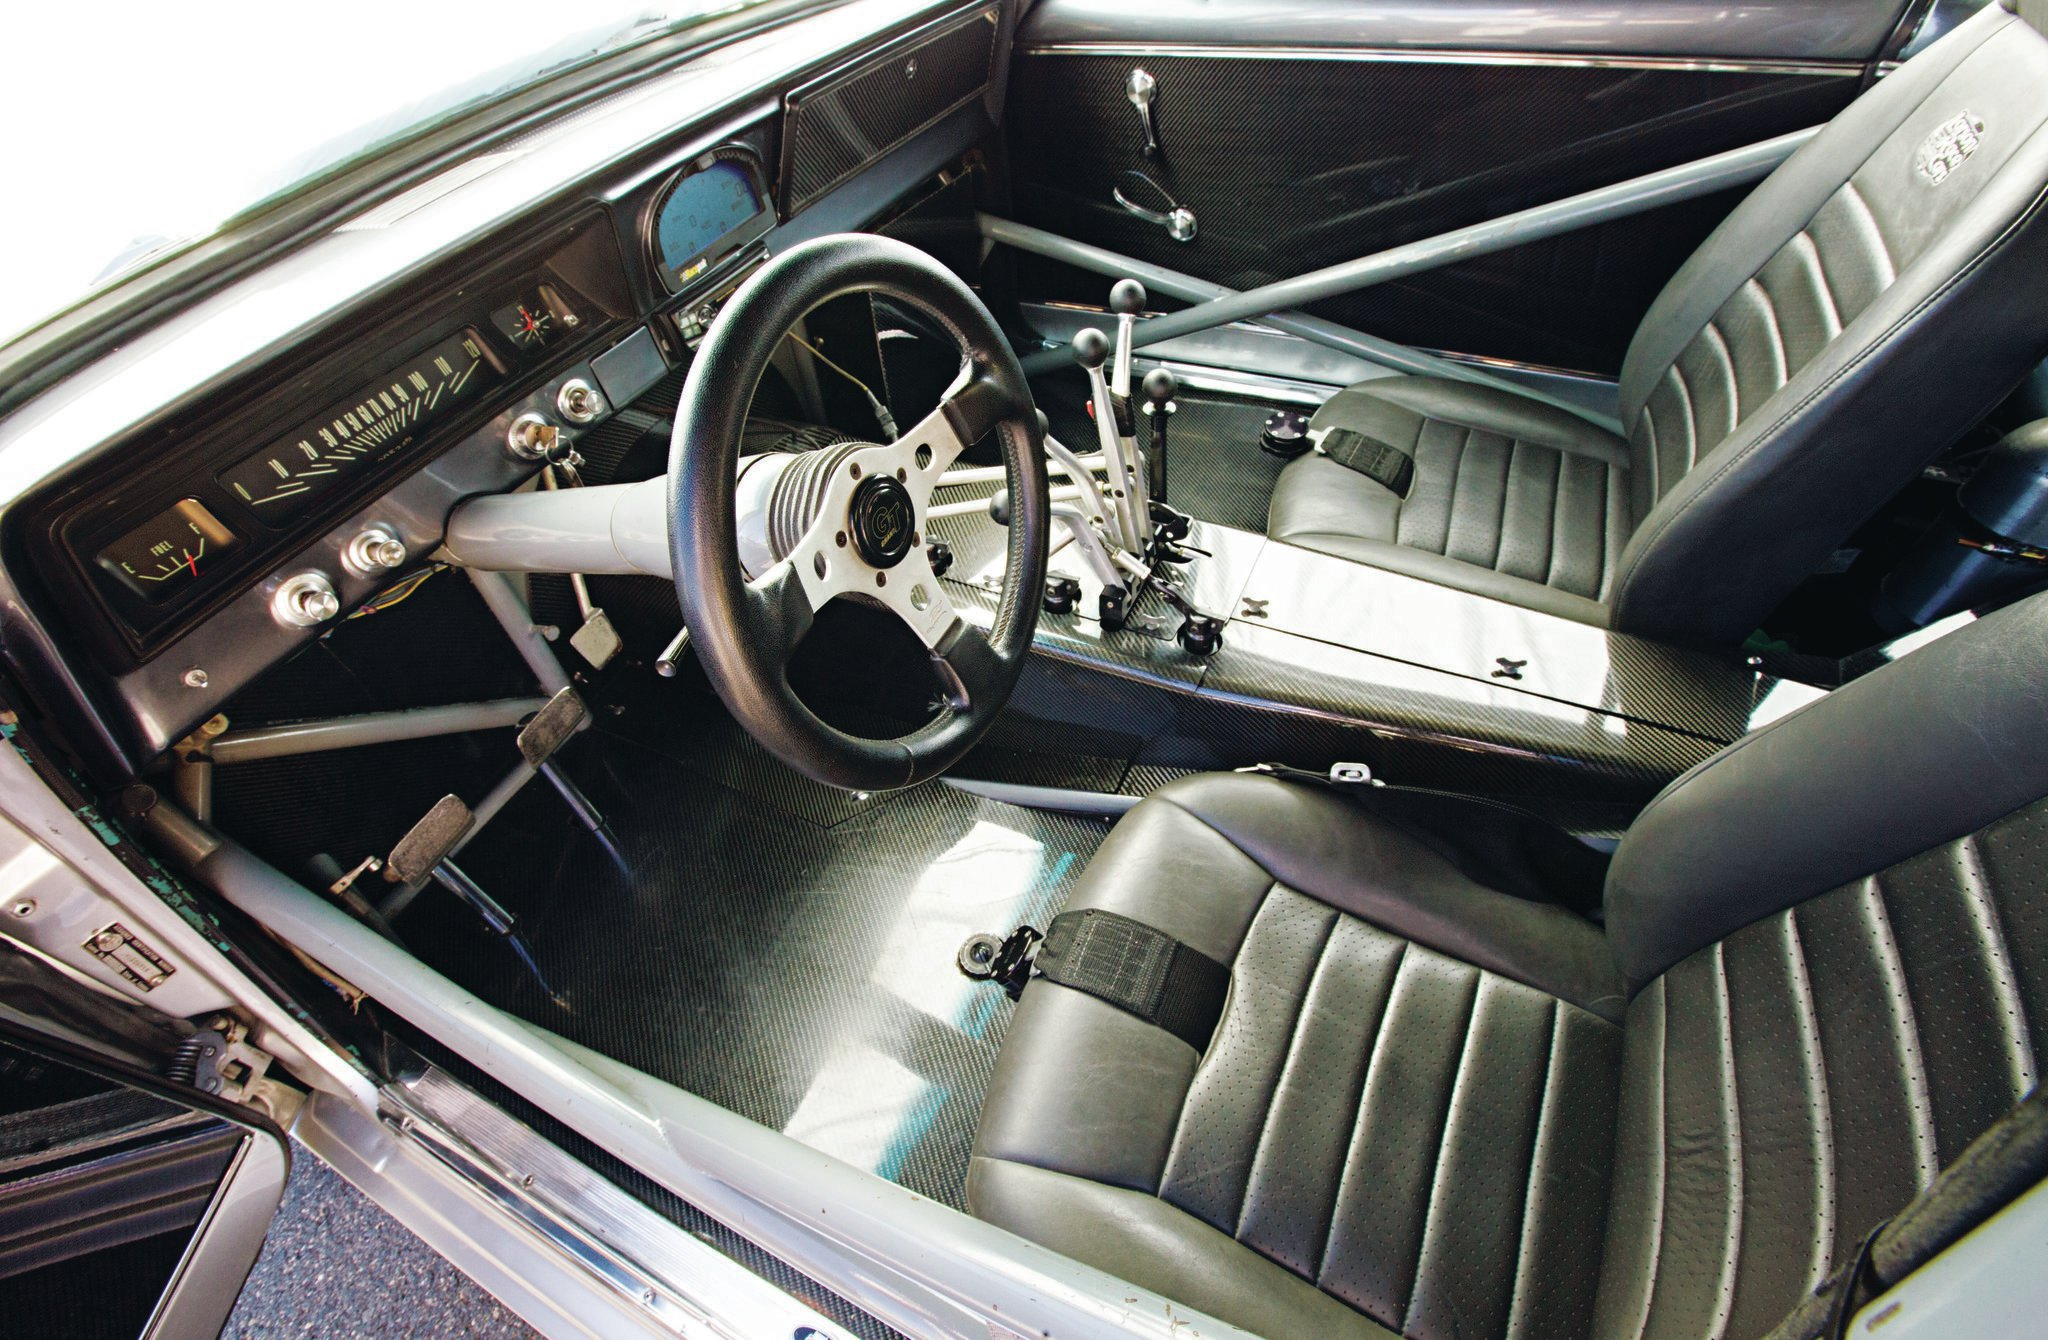 The interior always surprises people; it's not what most think a 6-second car would look like inside. The dash is original steel, and that's a tilt column with a GT Grant wheel. The carbon-fiber floors that extend from the firewall to the trunk, and the Lenco handles are the only real giveaways that we aren't looking into a Pro Street cruiser.